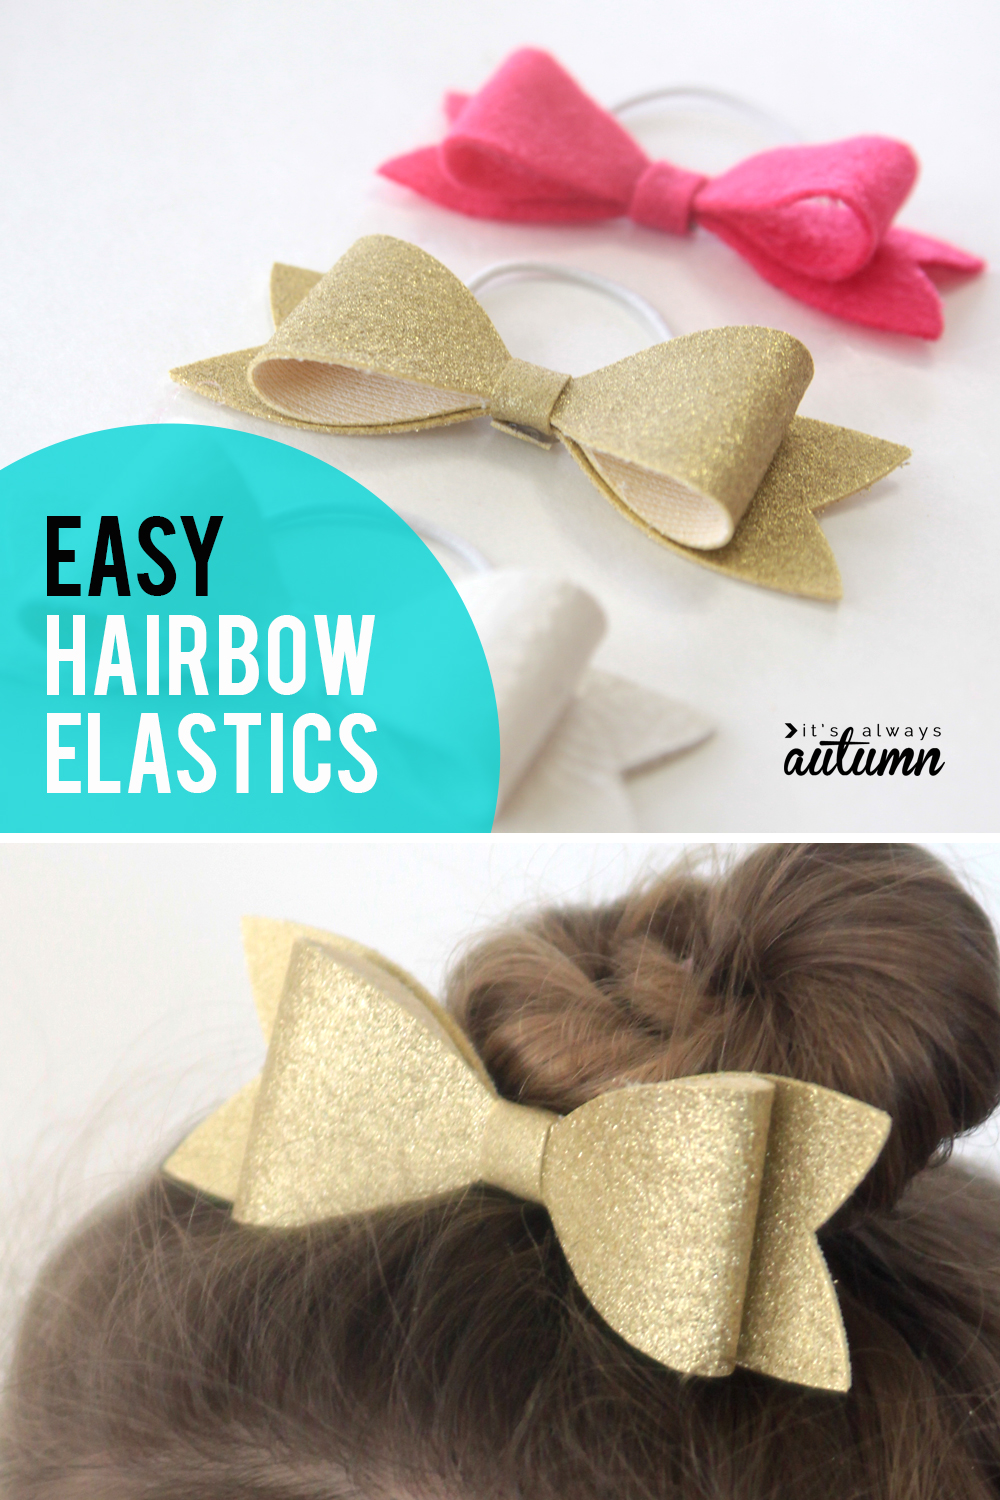 Easy DIY hairbow elastics. These cute hairbows are easy to make and look darling!